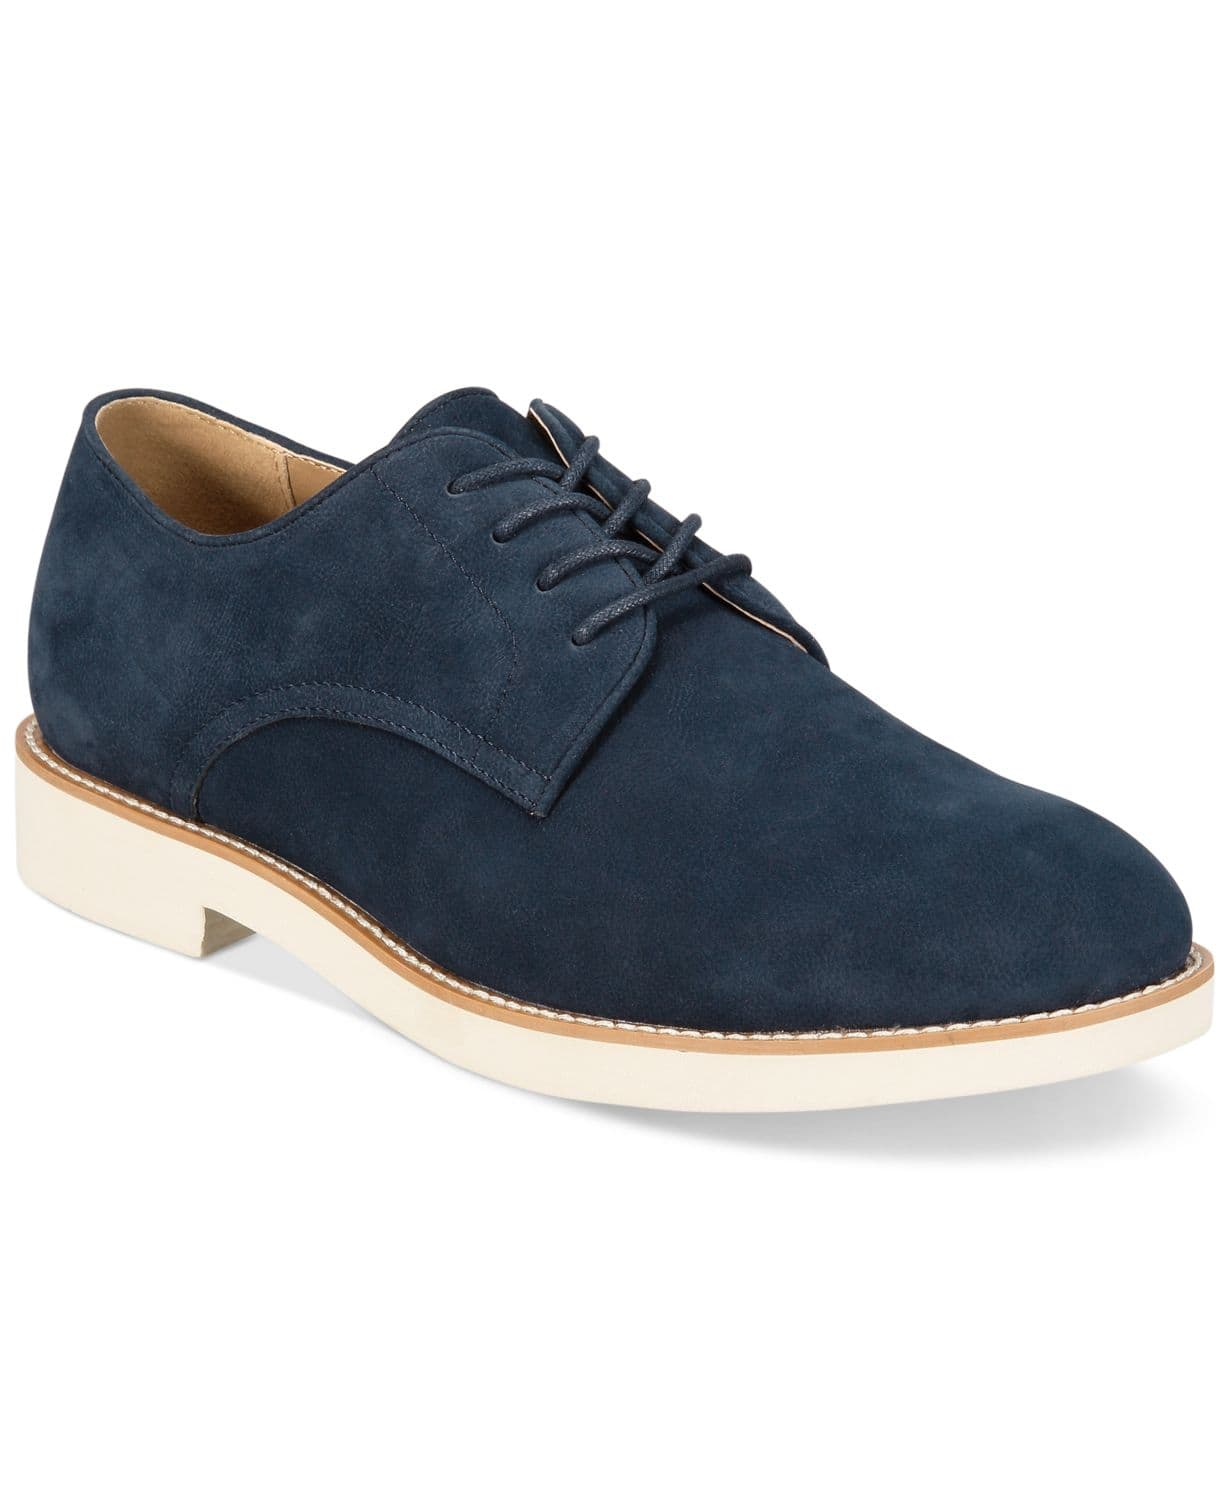 Macys Shoes Flash Sale: Club Room Men's Buck Dress Shoes $15, Tommy Hilfiger Men's Boat Shoes $16, Kenneth Cole Reaction Women's Pool Slides $9.75, More + free store pickup